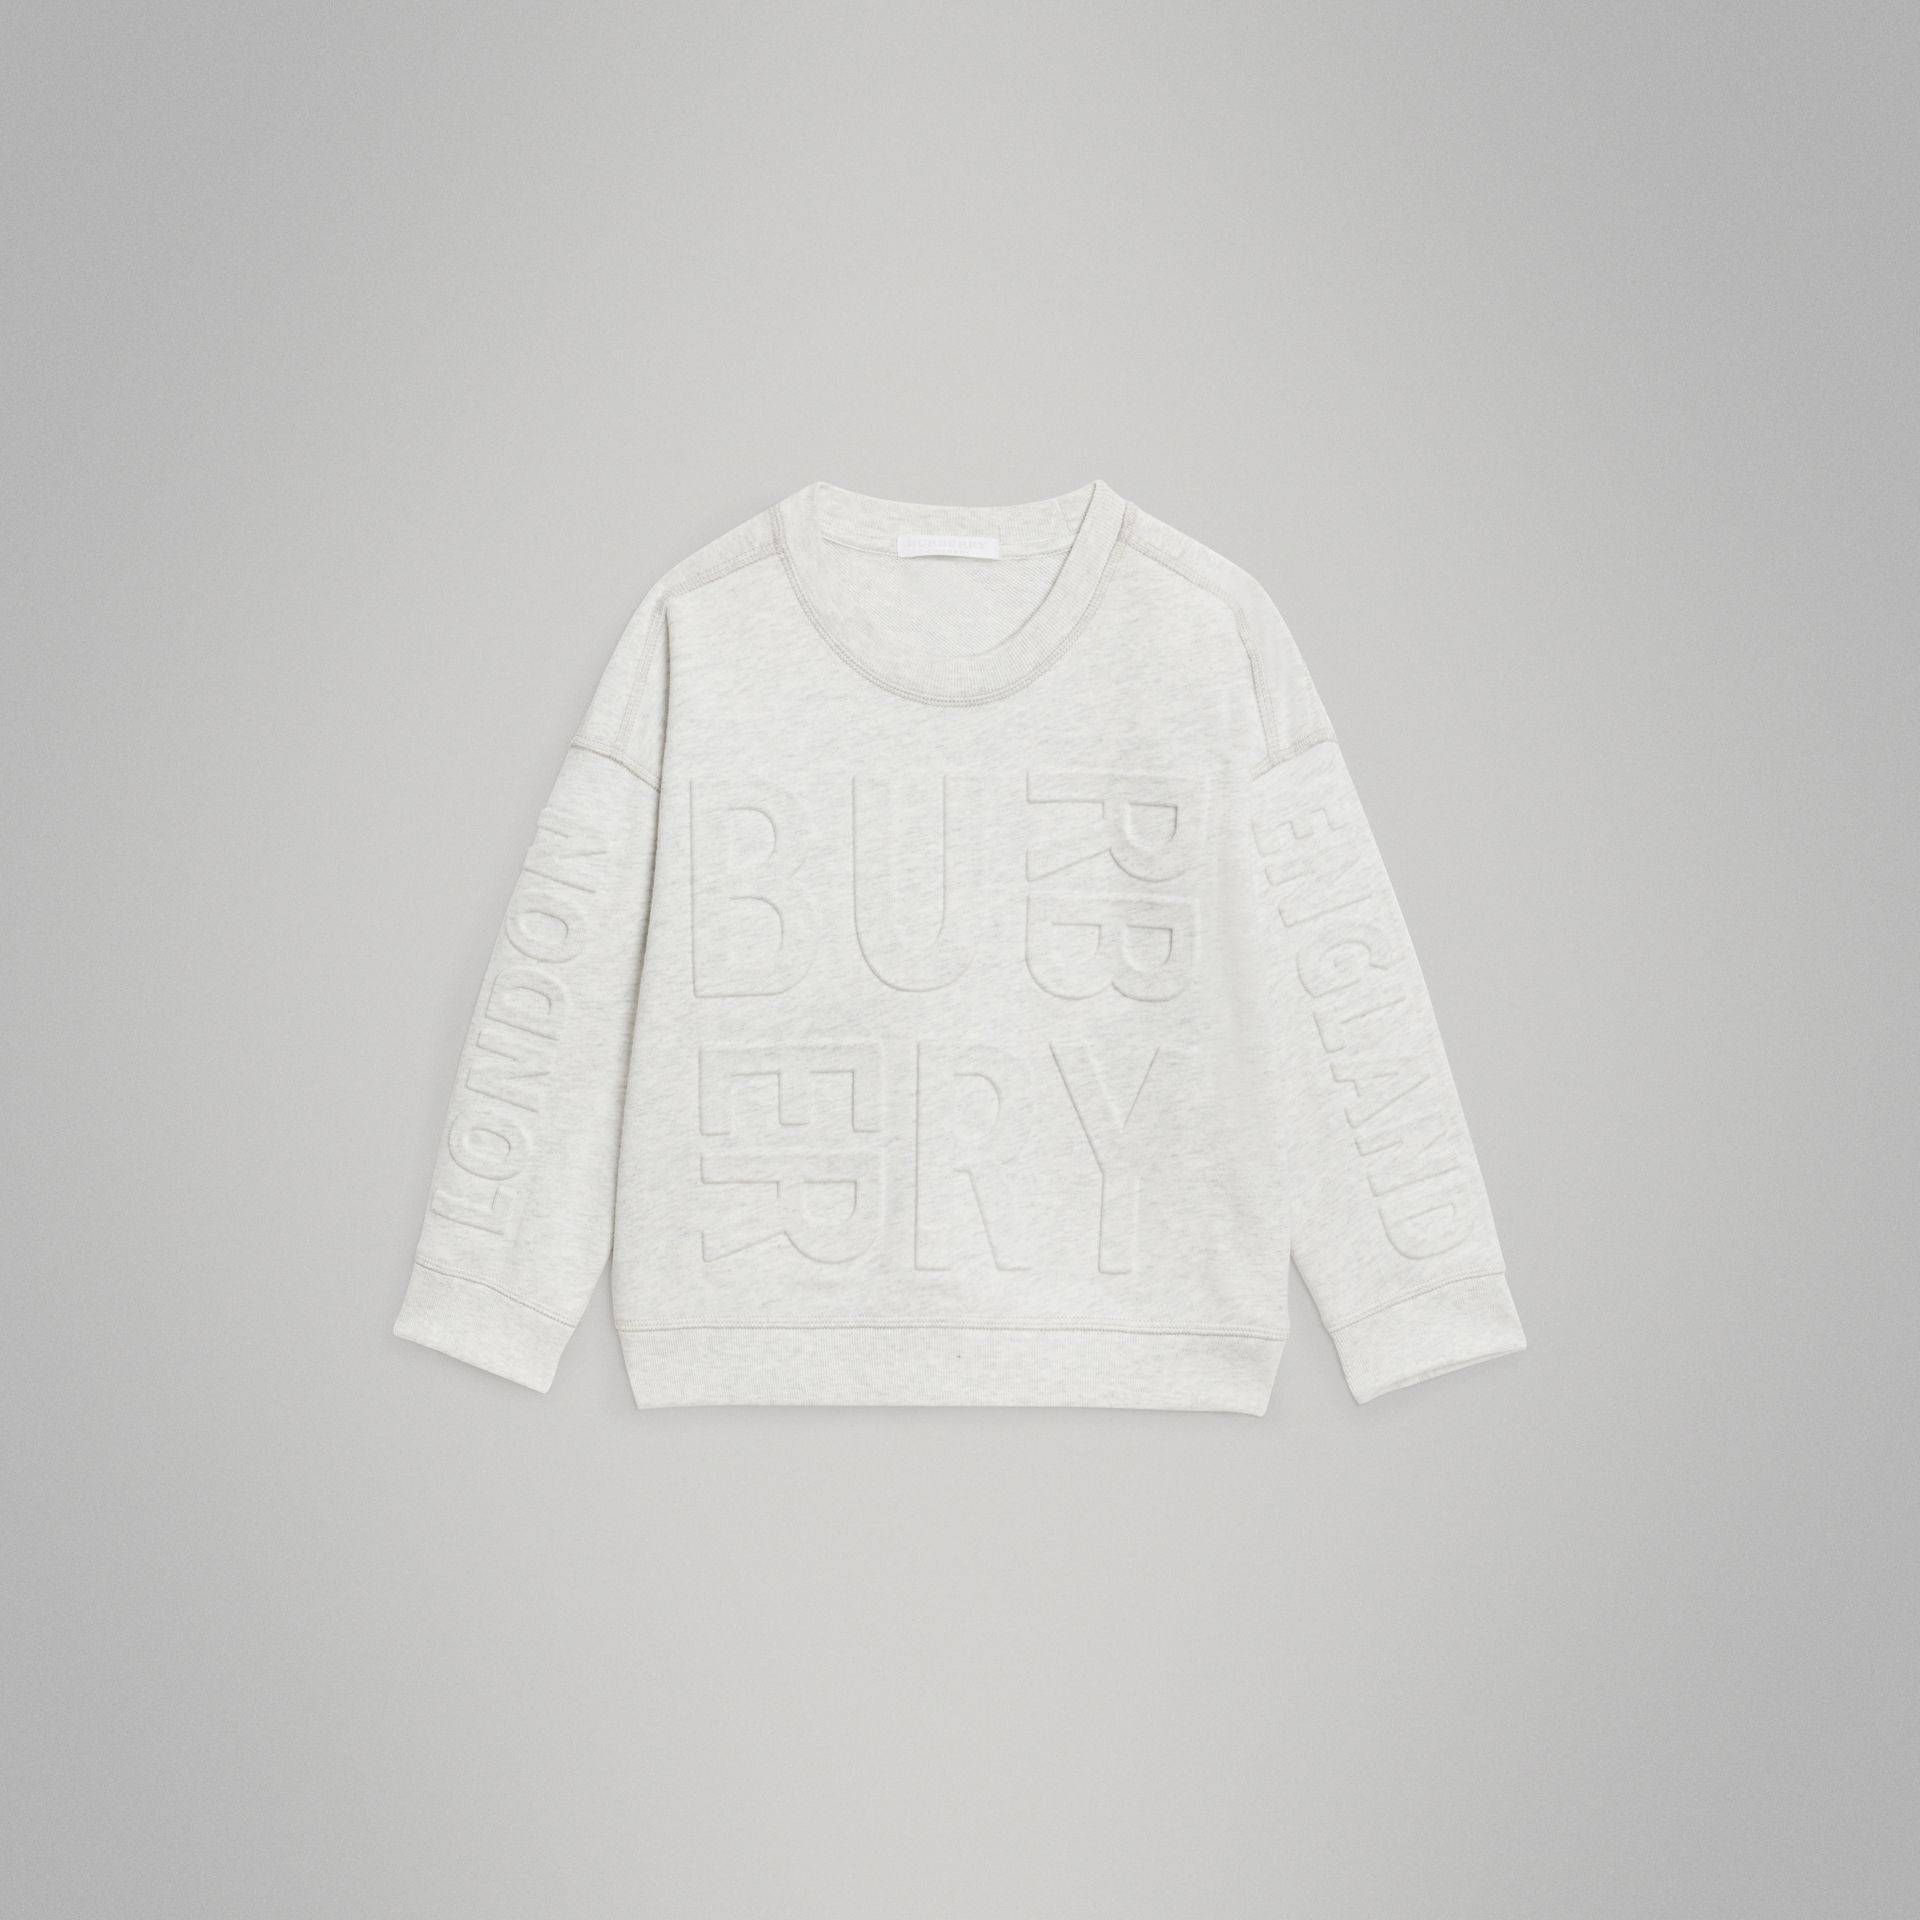 Sweat-shirt en coton avec logo estampé (Camaïeu De Blancs) | Burberry - photo de la galerie 0